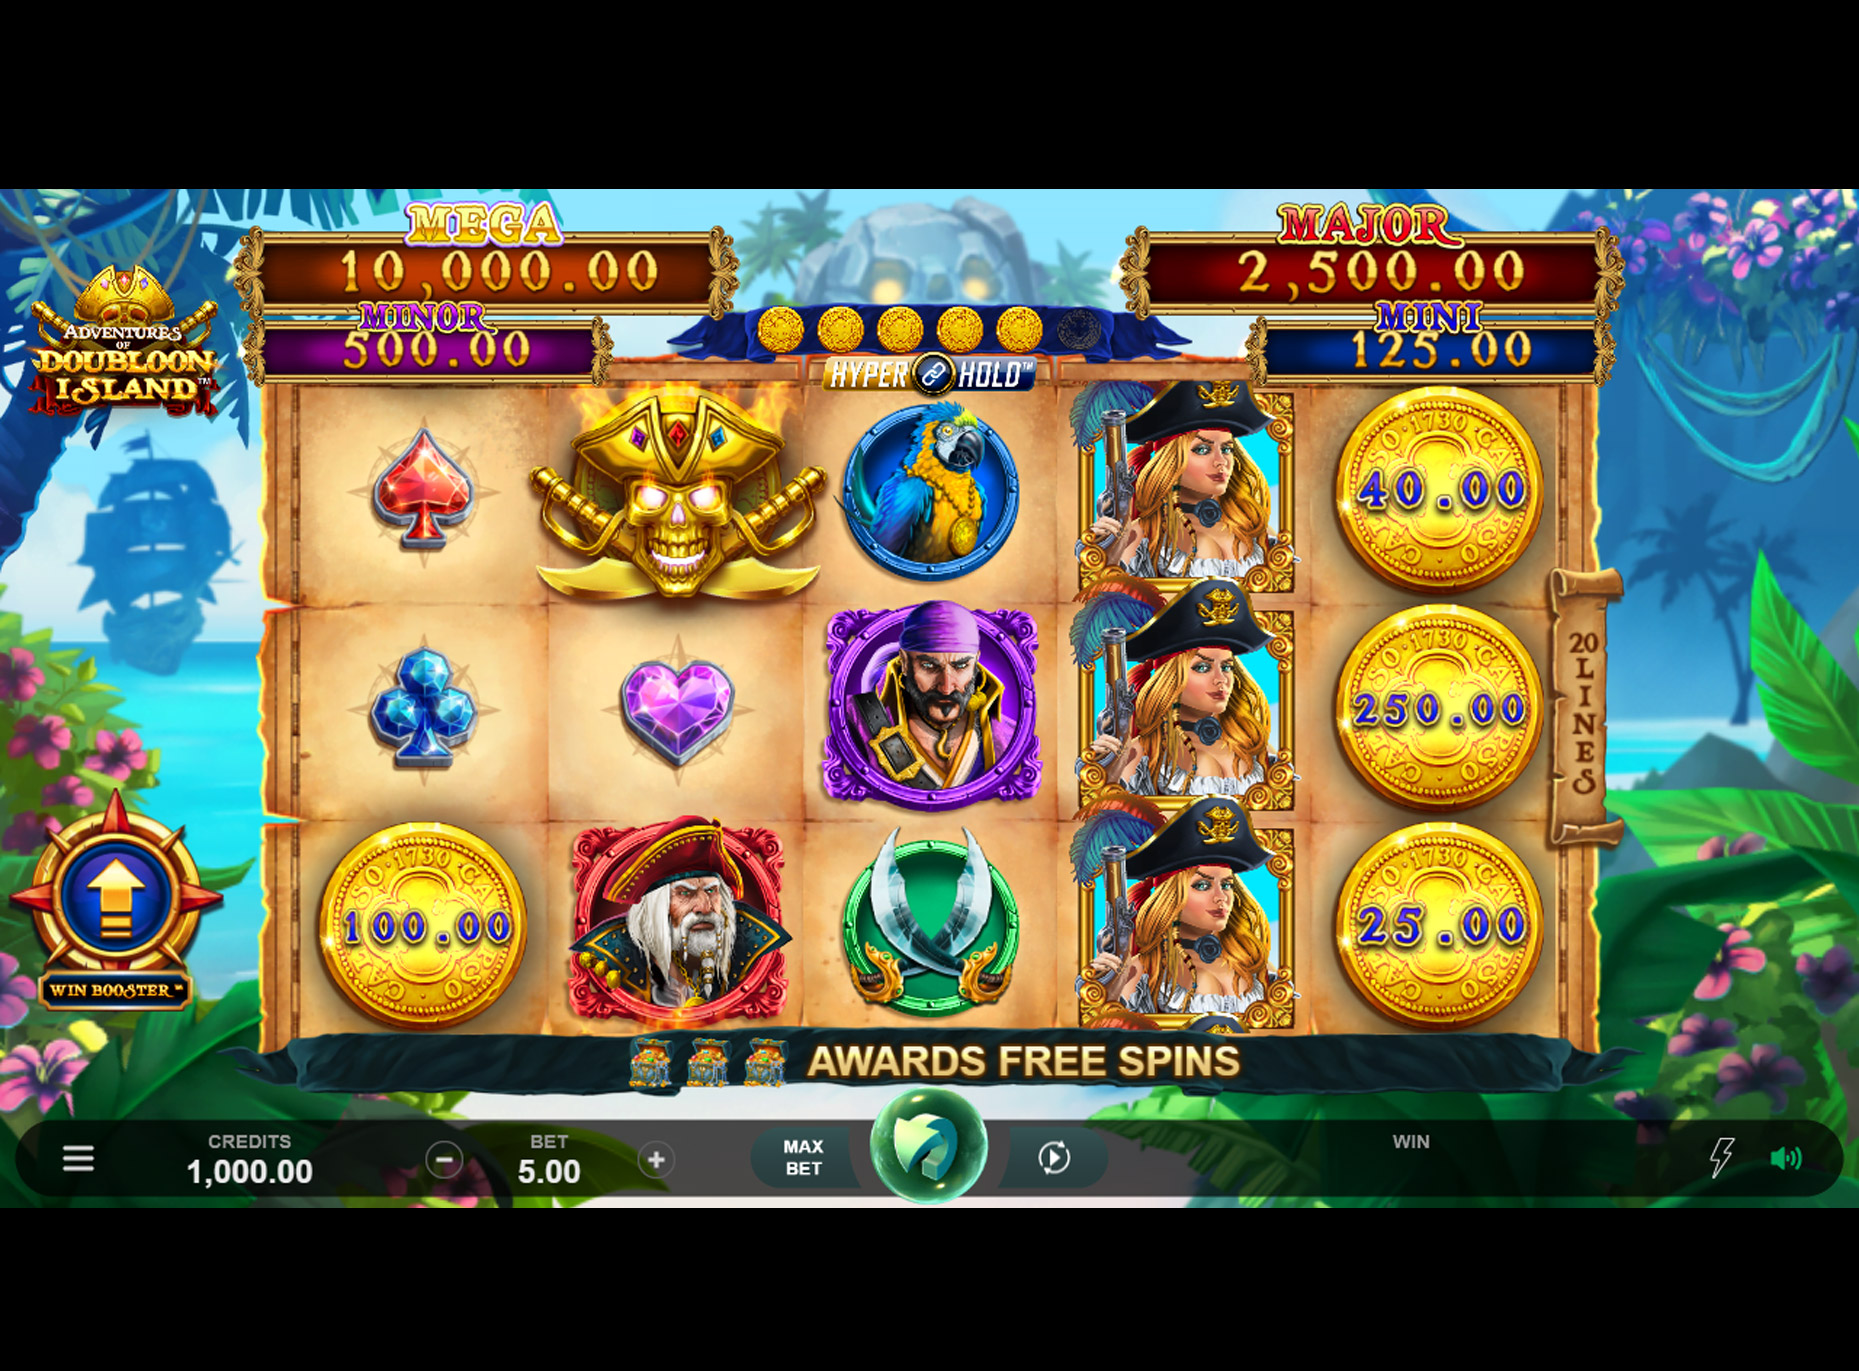 Slot Adventures of Doubloon Island